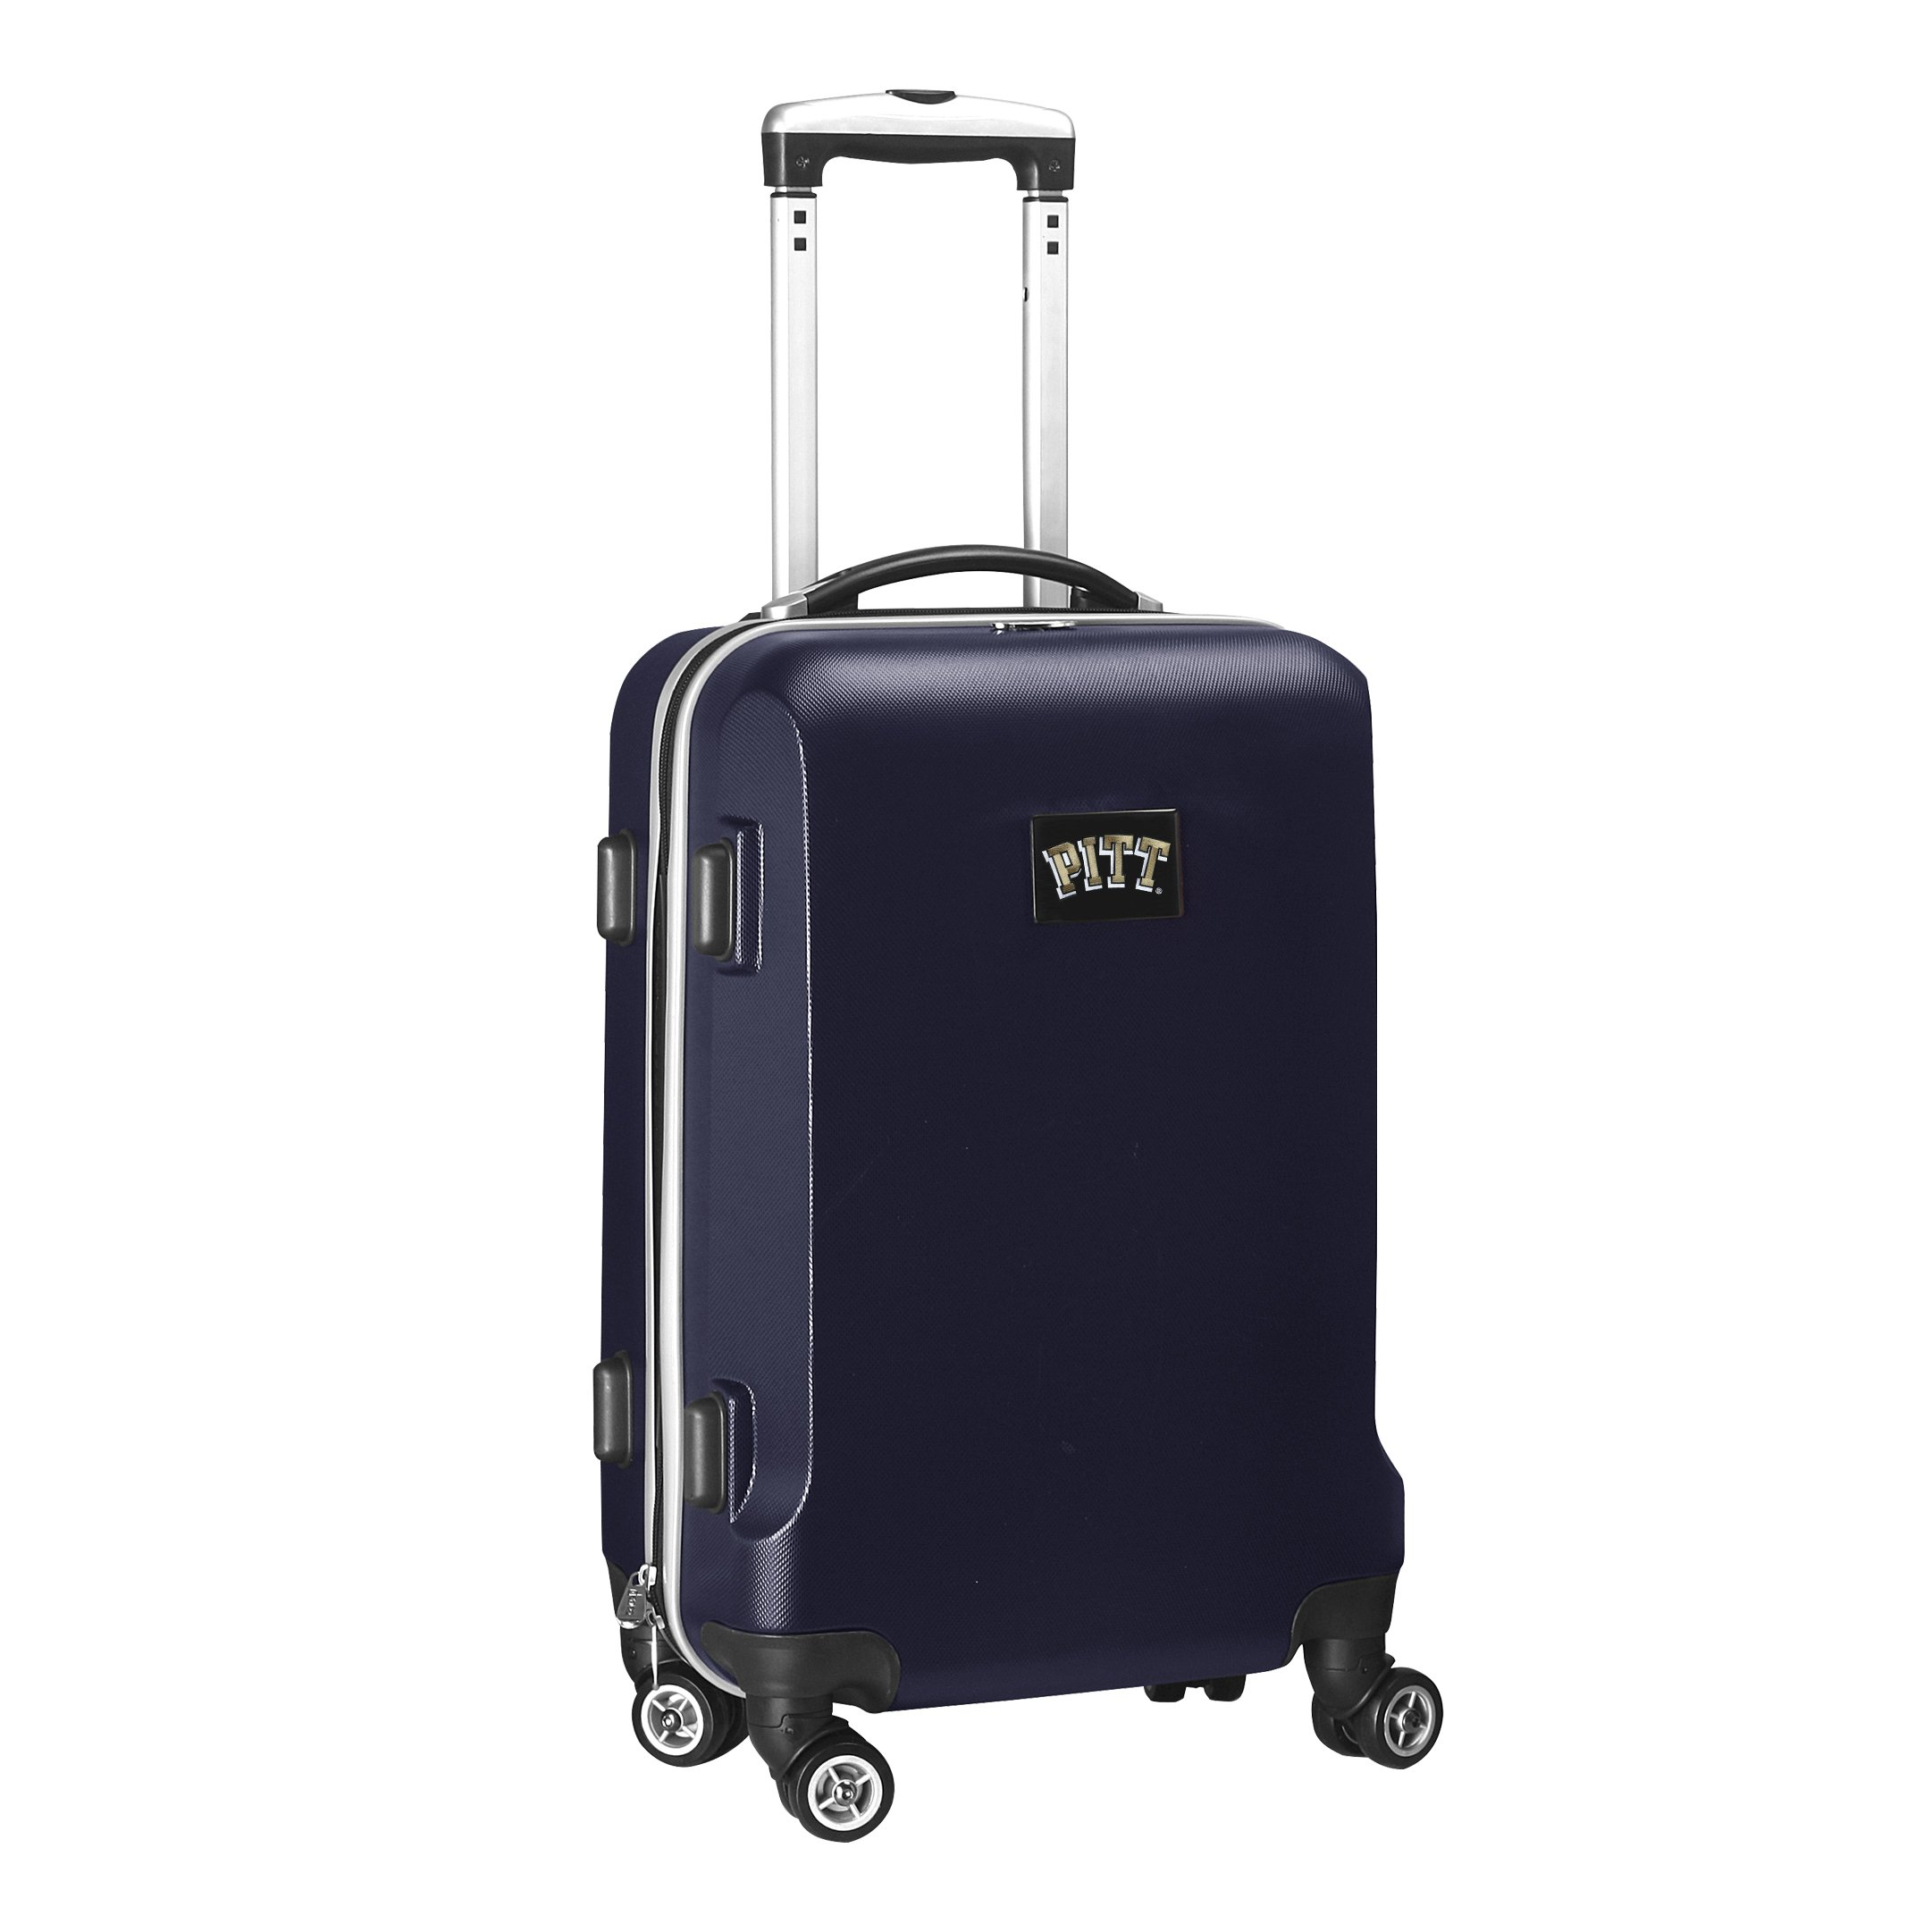 Denco NCAA Pittsburgh Panthers Carry-On Hardcase Spinner, Navy by Denco